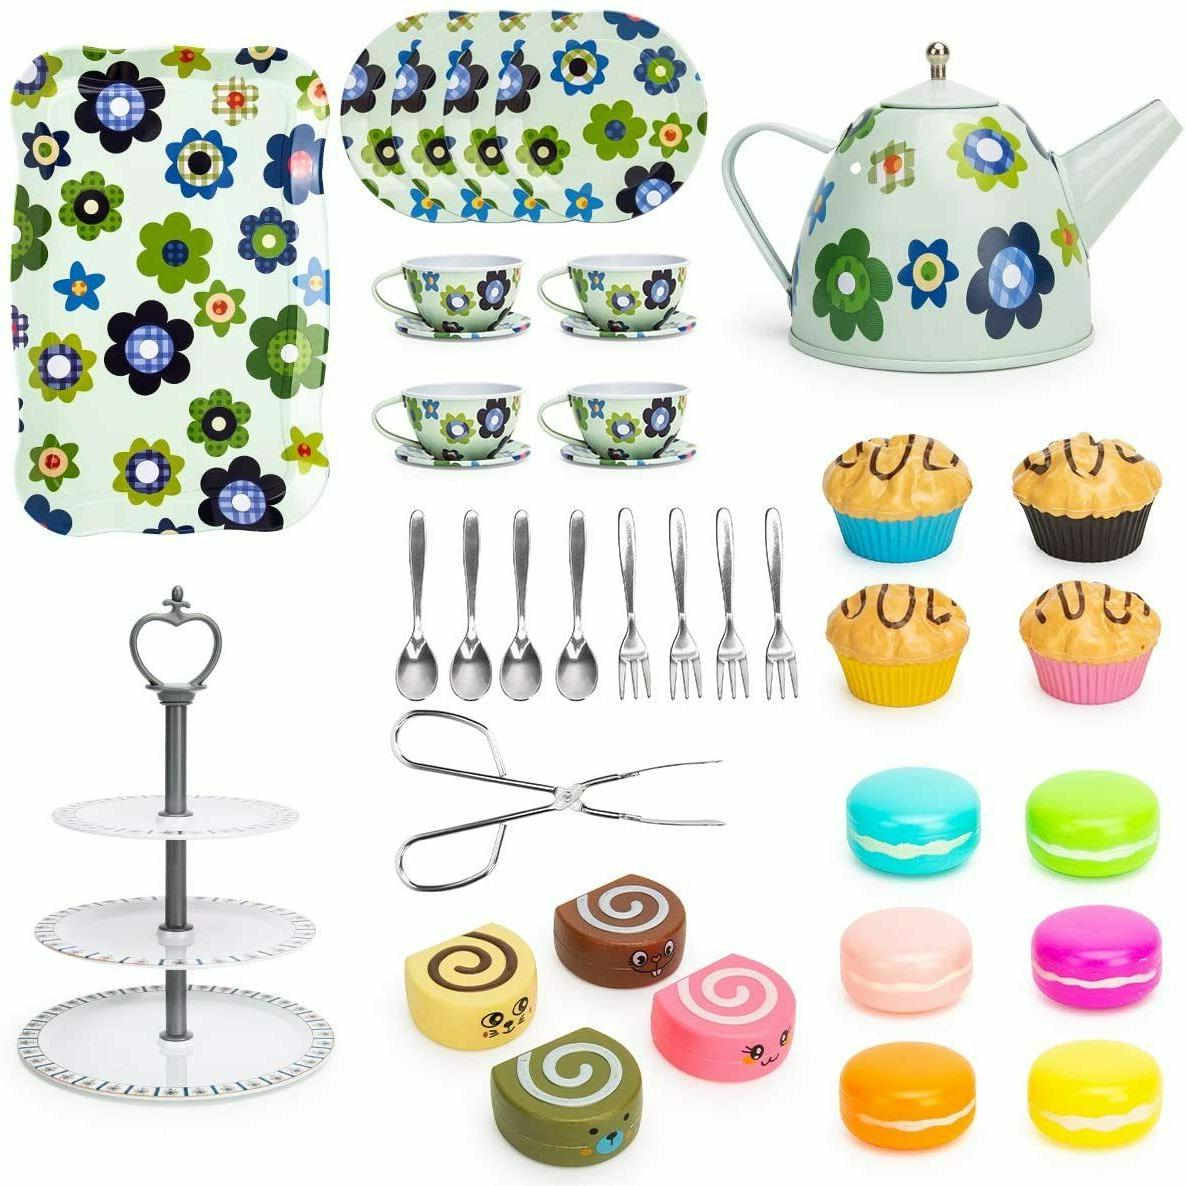 Kid Tin Tea Toy with Cake Stand and Play Food